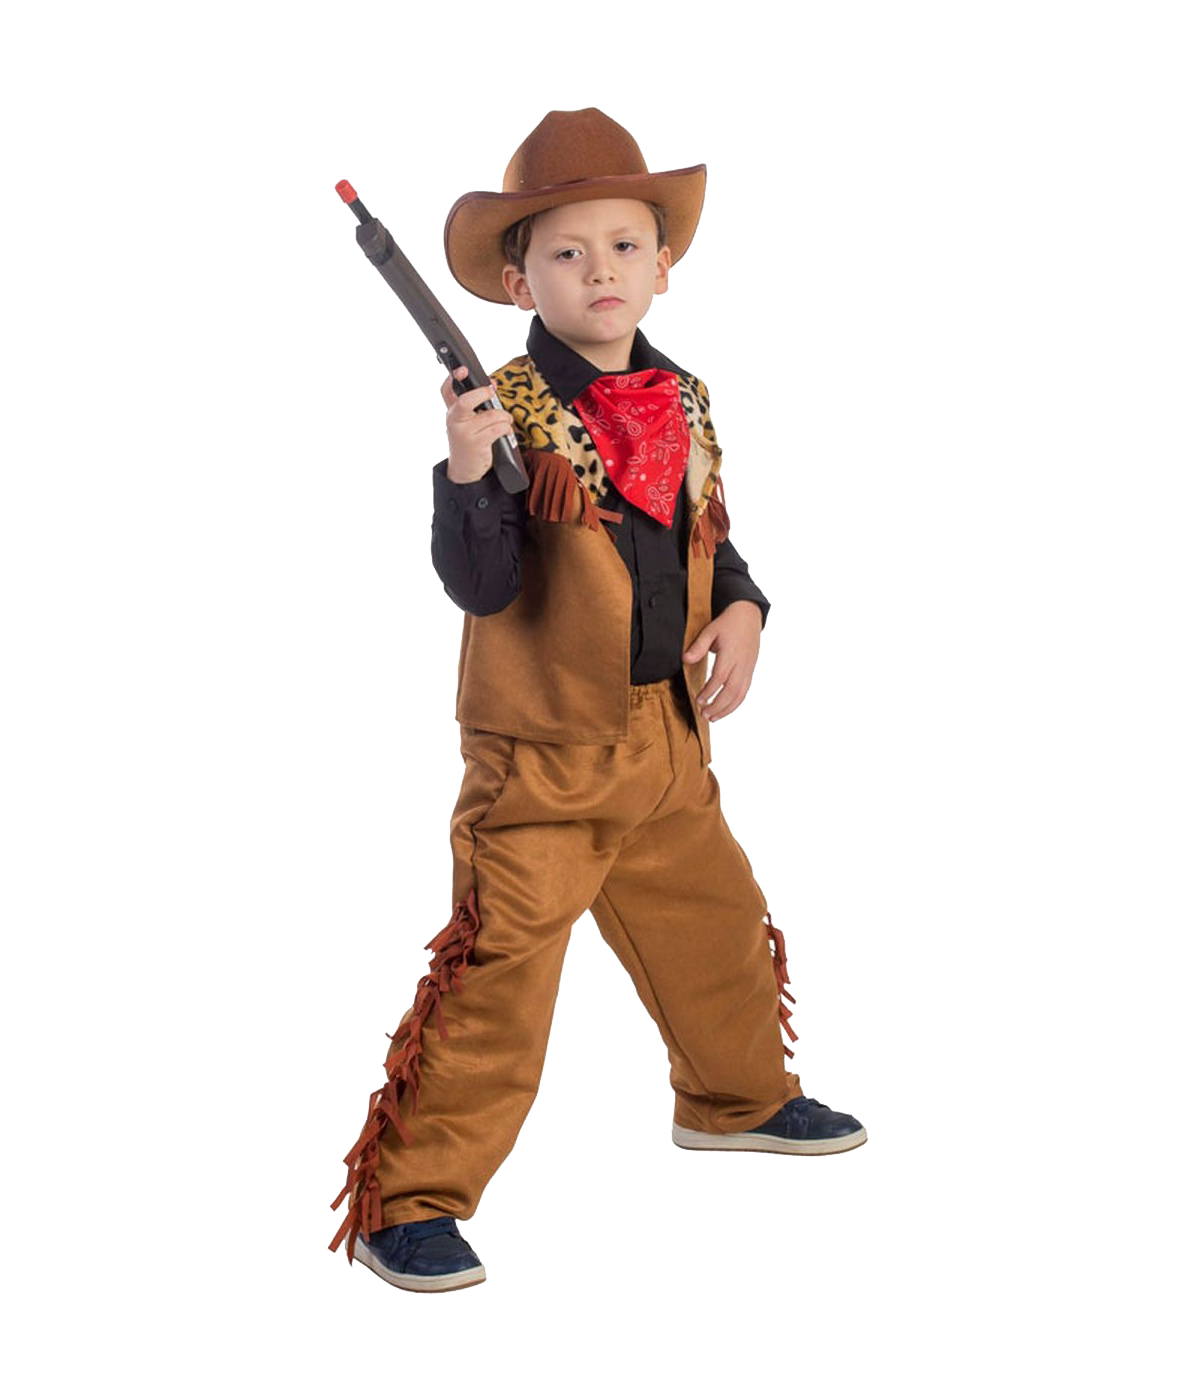 clip transparent download File png names. Cowboy transparent